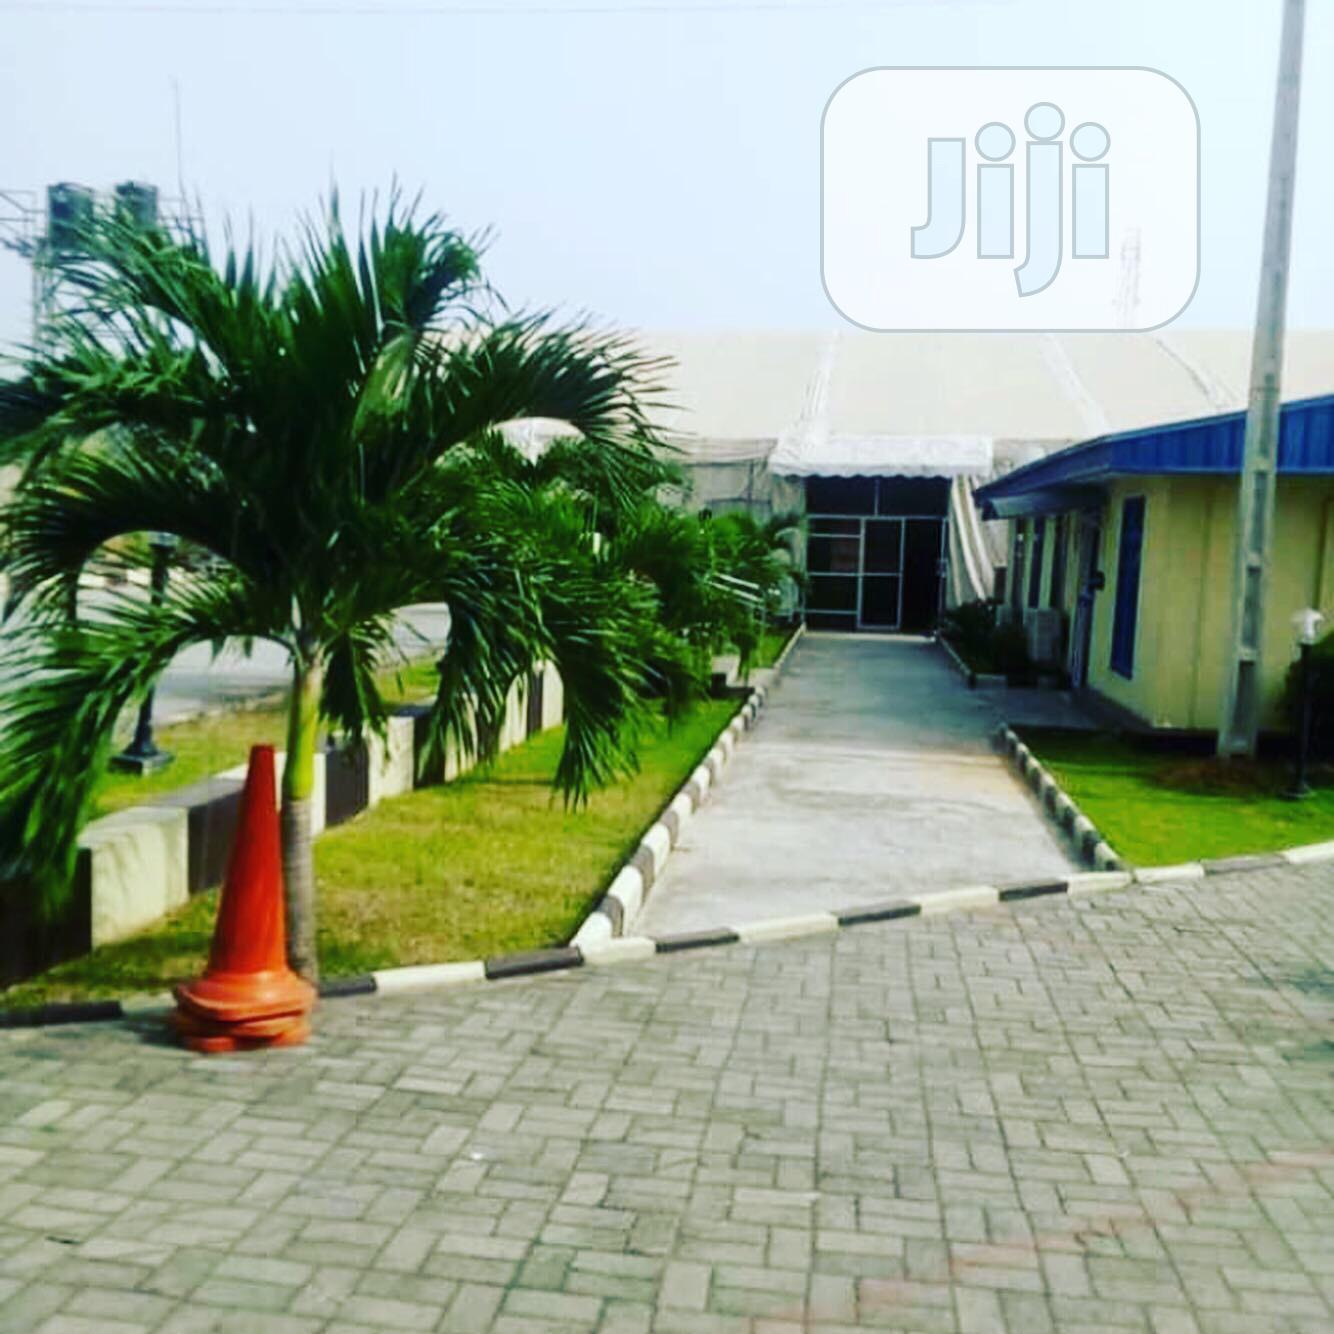 A Commercial Land For Sale | Land & Plots For Sale for sale in Ikeja, Lagos State, Nigeria